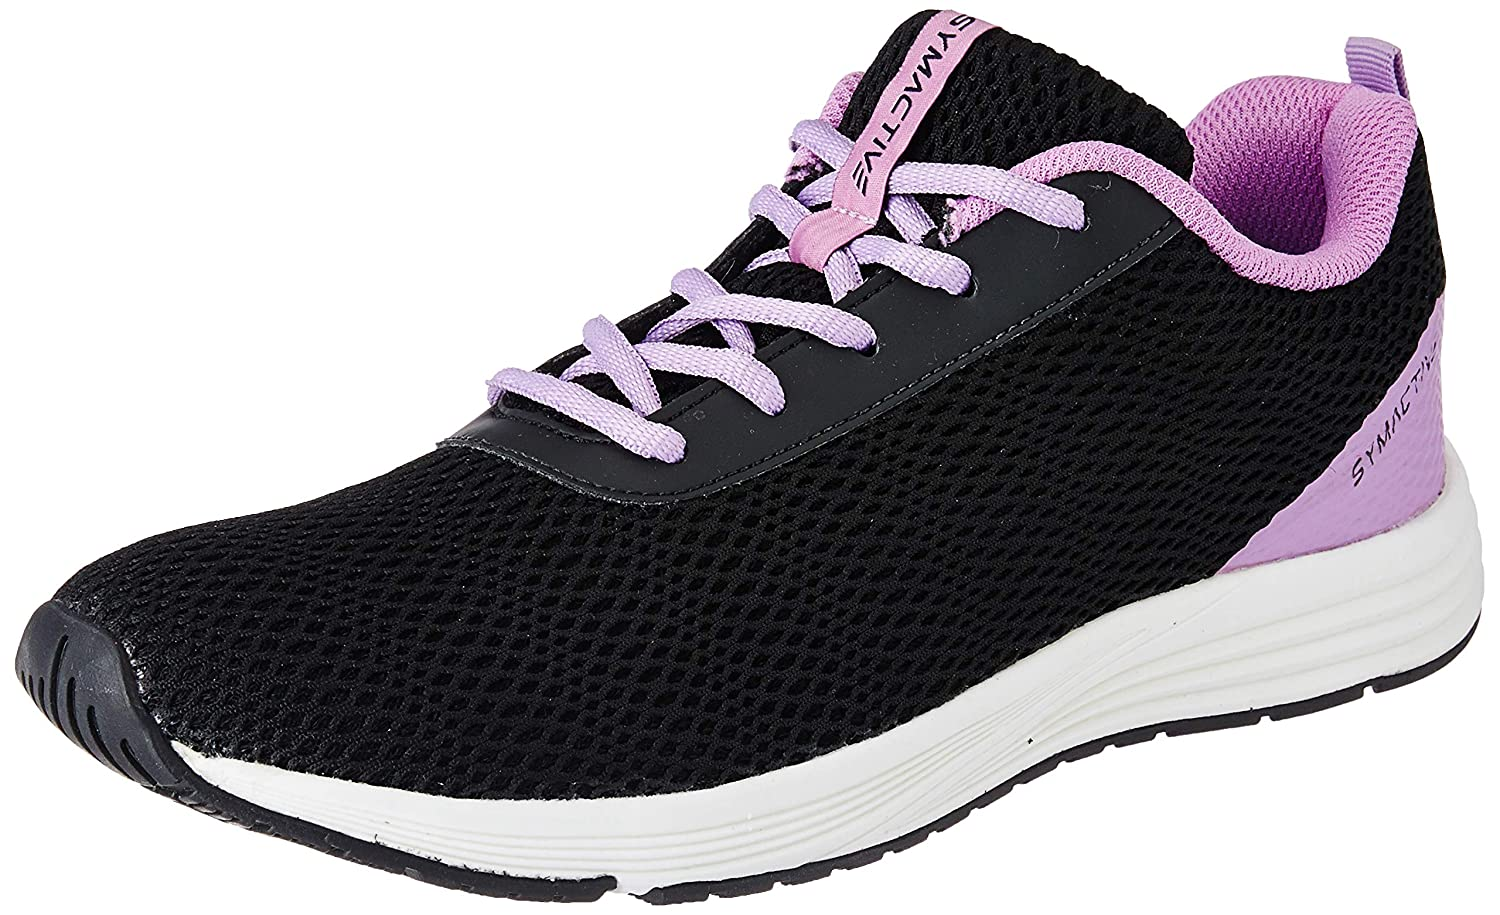 Amazon Brand - Symactive Women's Running Shoes